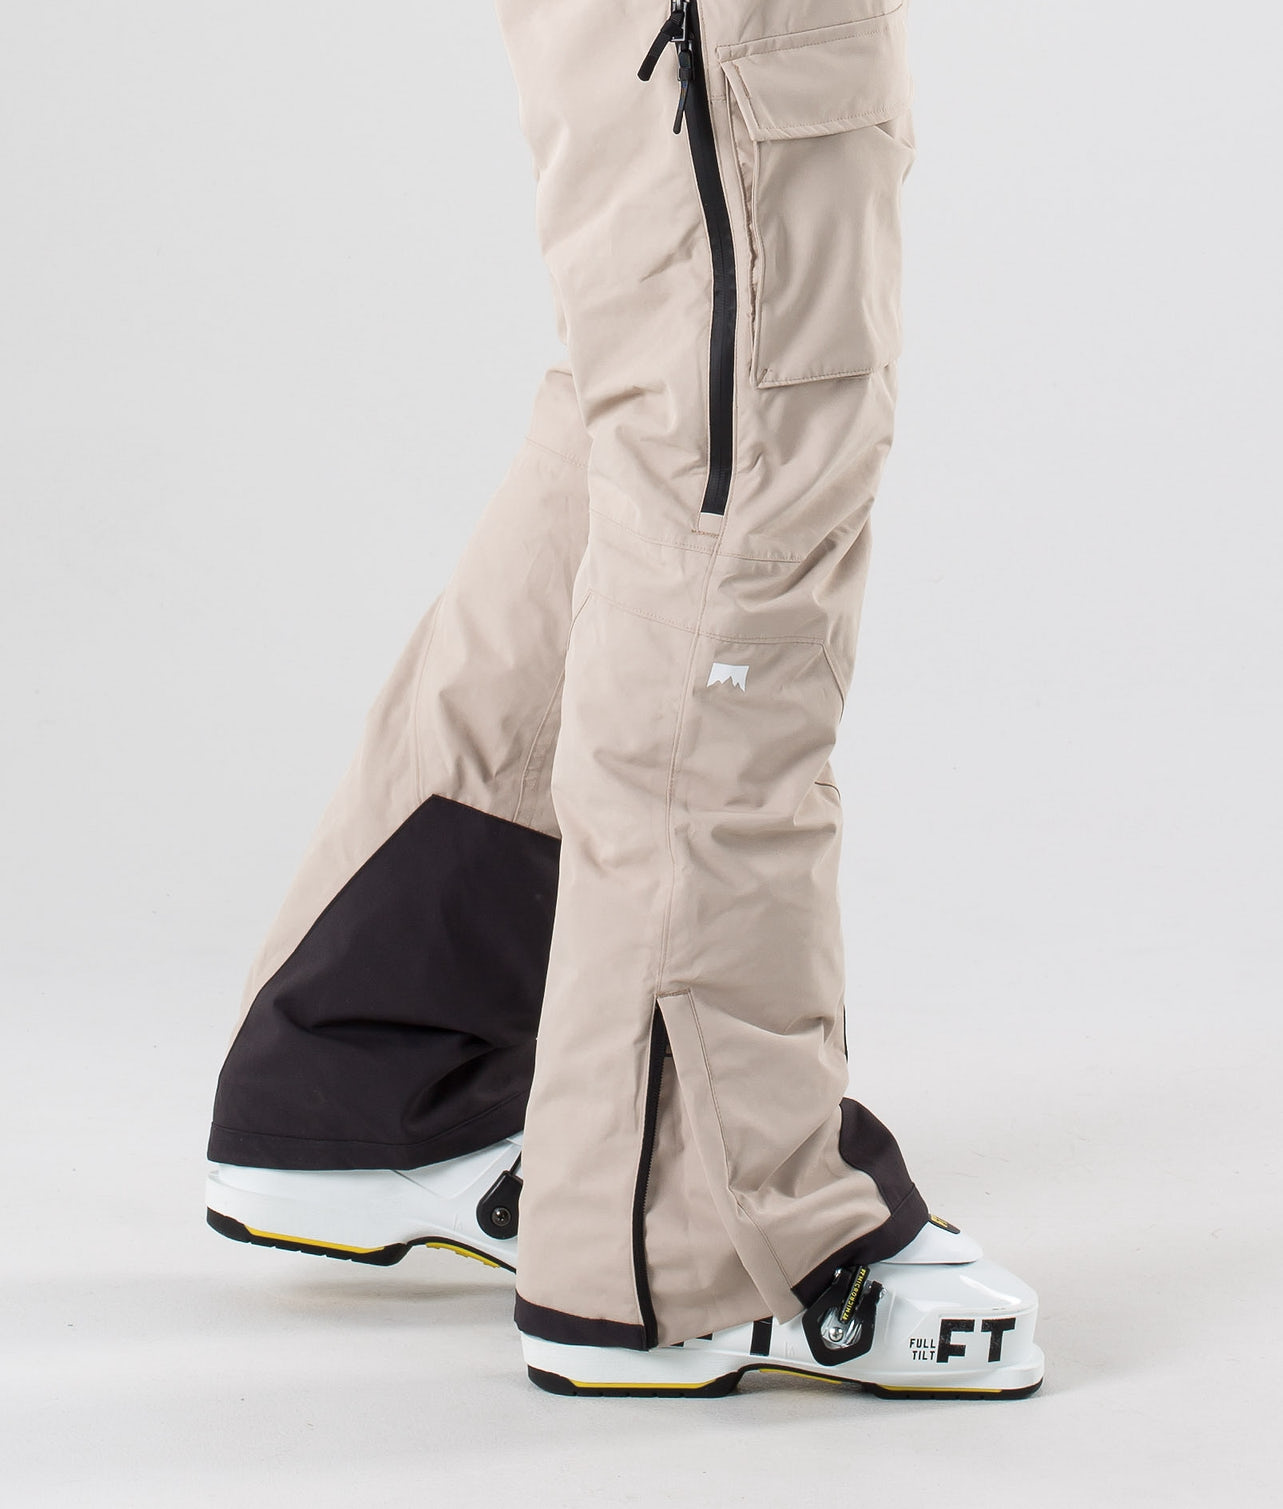 Buy Fawk Ski Pants from Montec at Ridestore.com - Always free shipping, free returns and 30 days money back guarantee